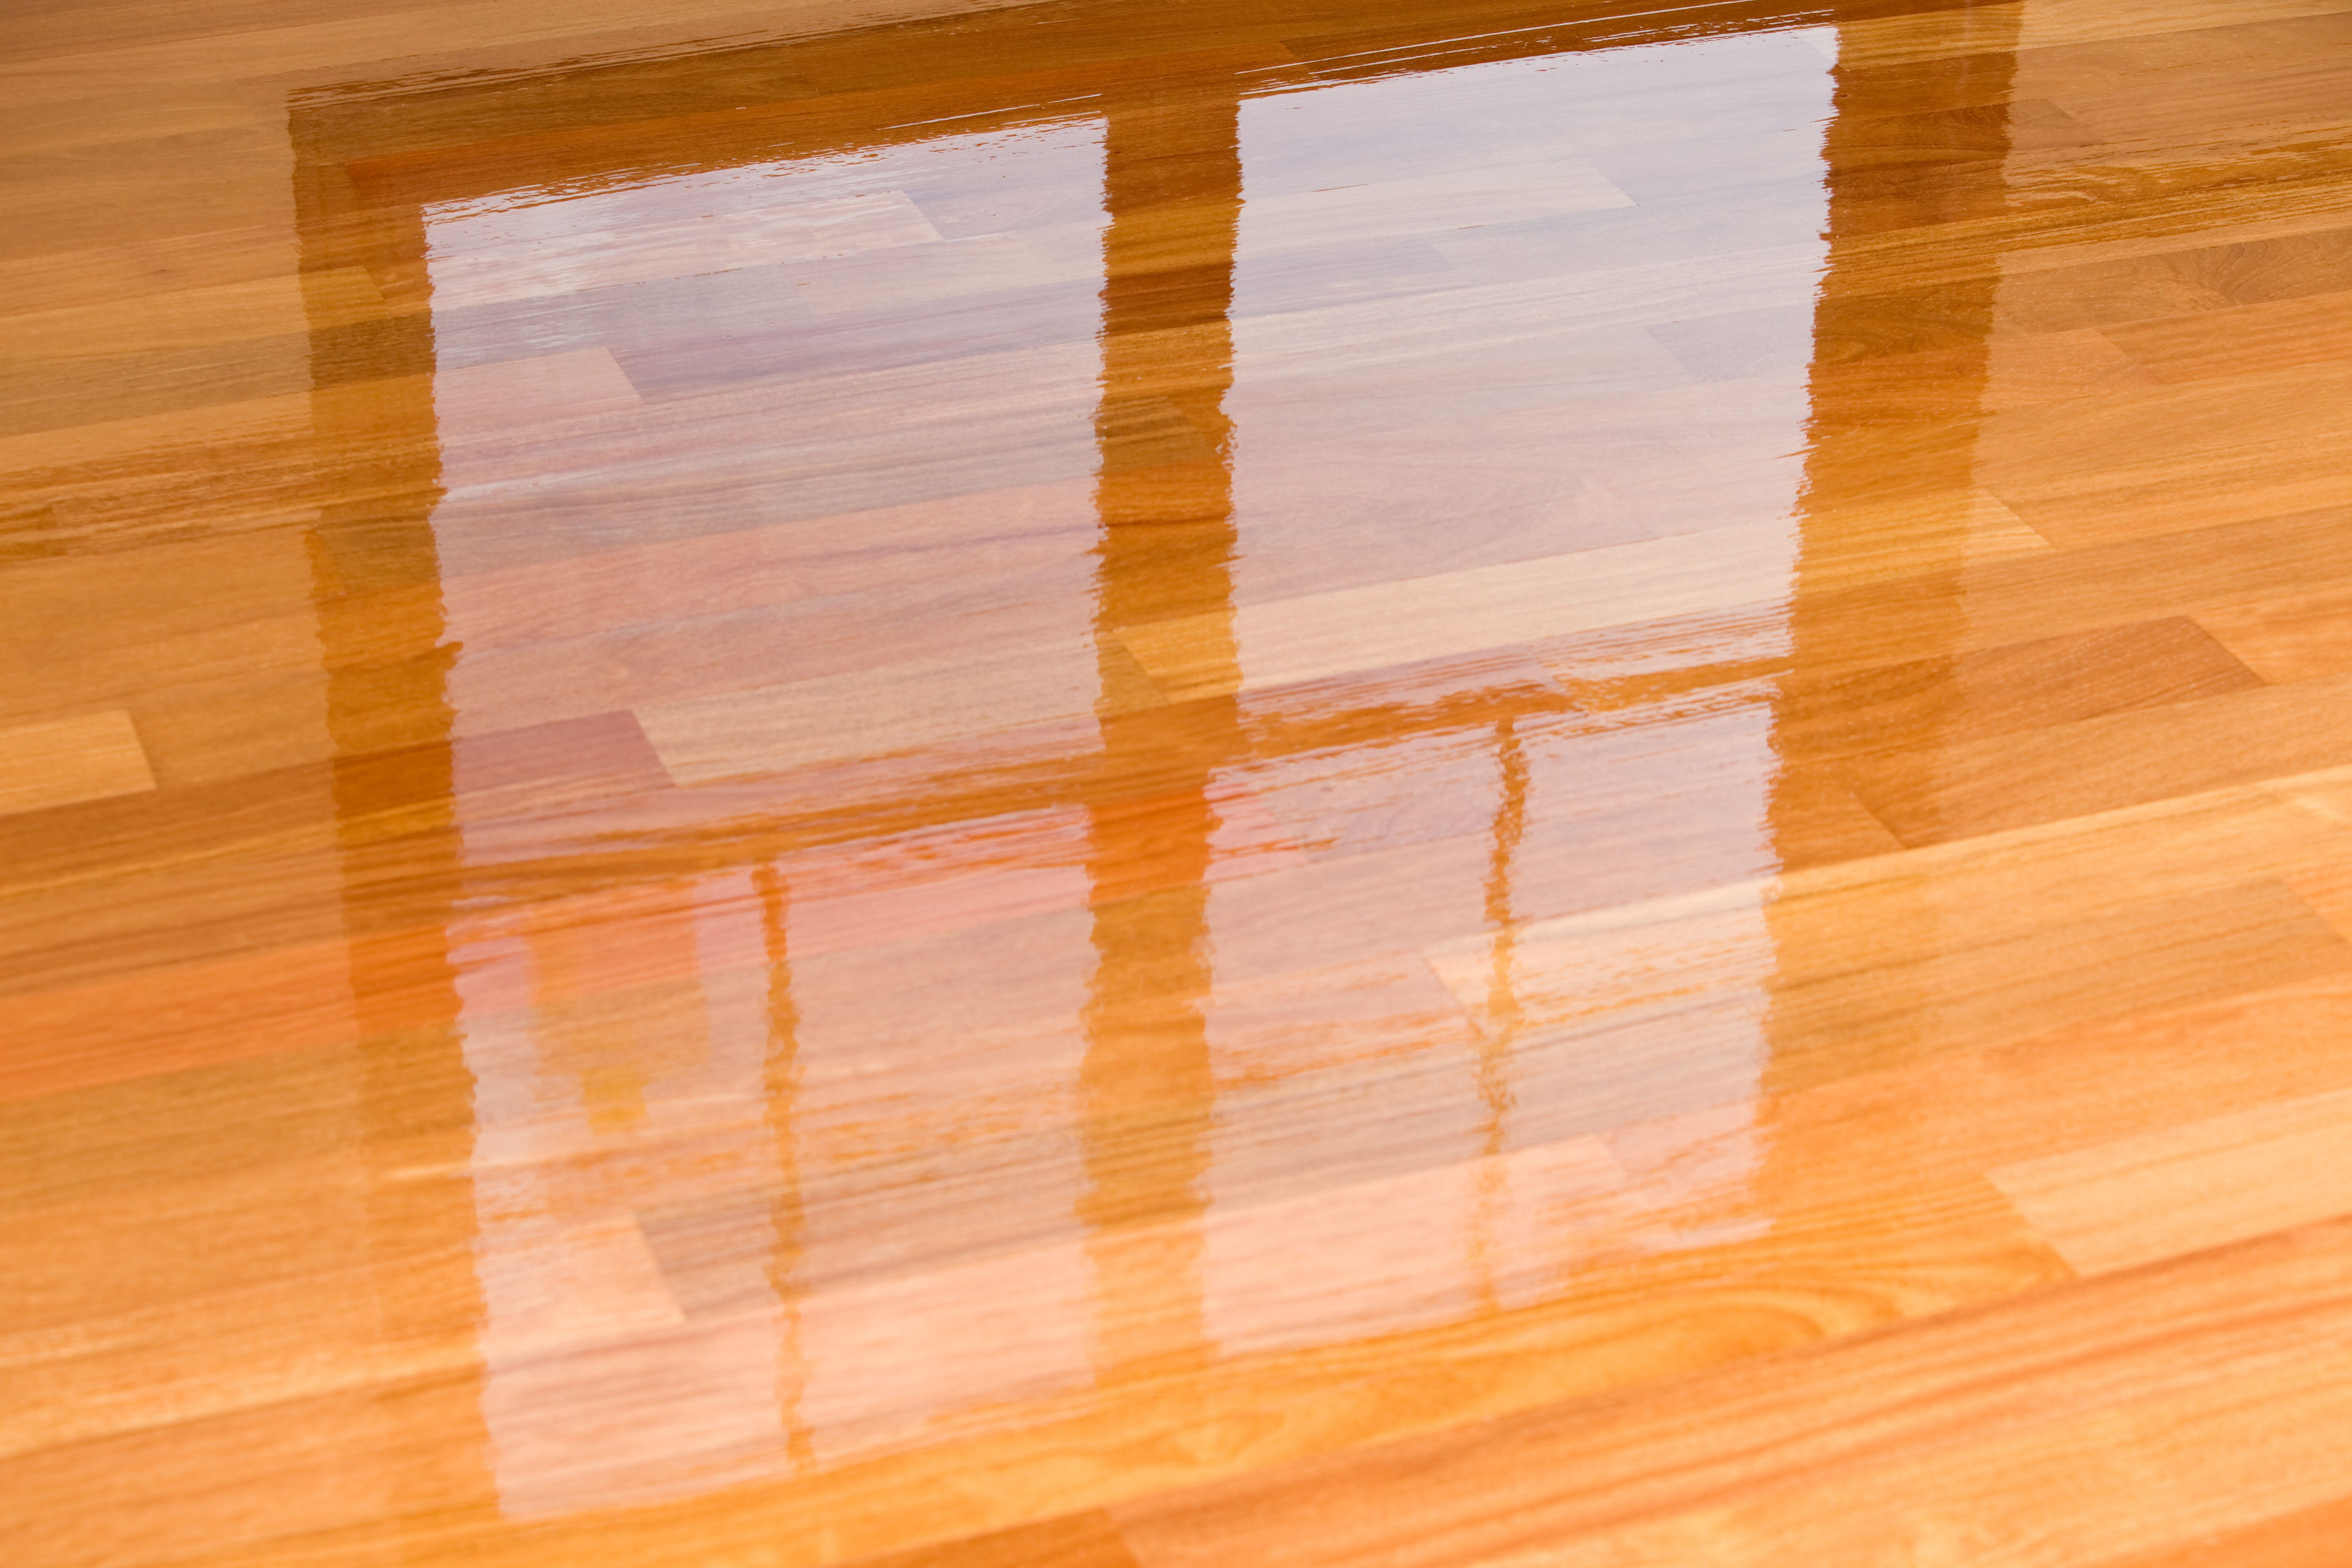 best humidity level for hardwood floors in winter of guide to laminate flooring water and damage repair intended for wet polyurethane on new hardwood floor with window reflection 183846705 582e34da3df78c6f6a403968